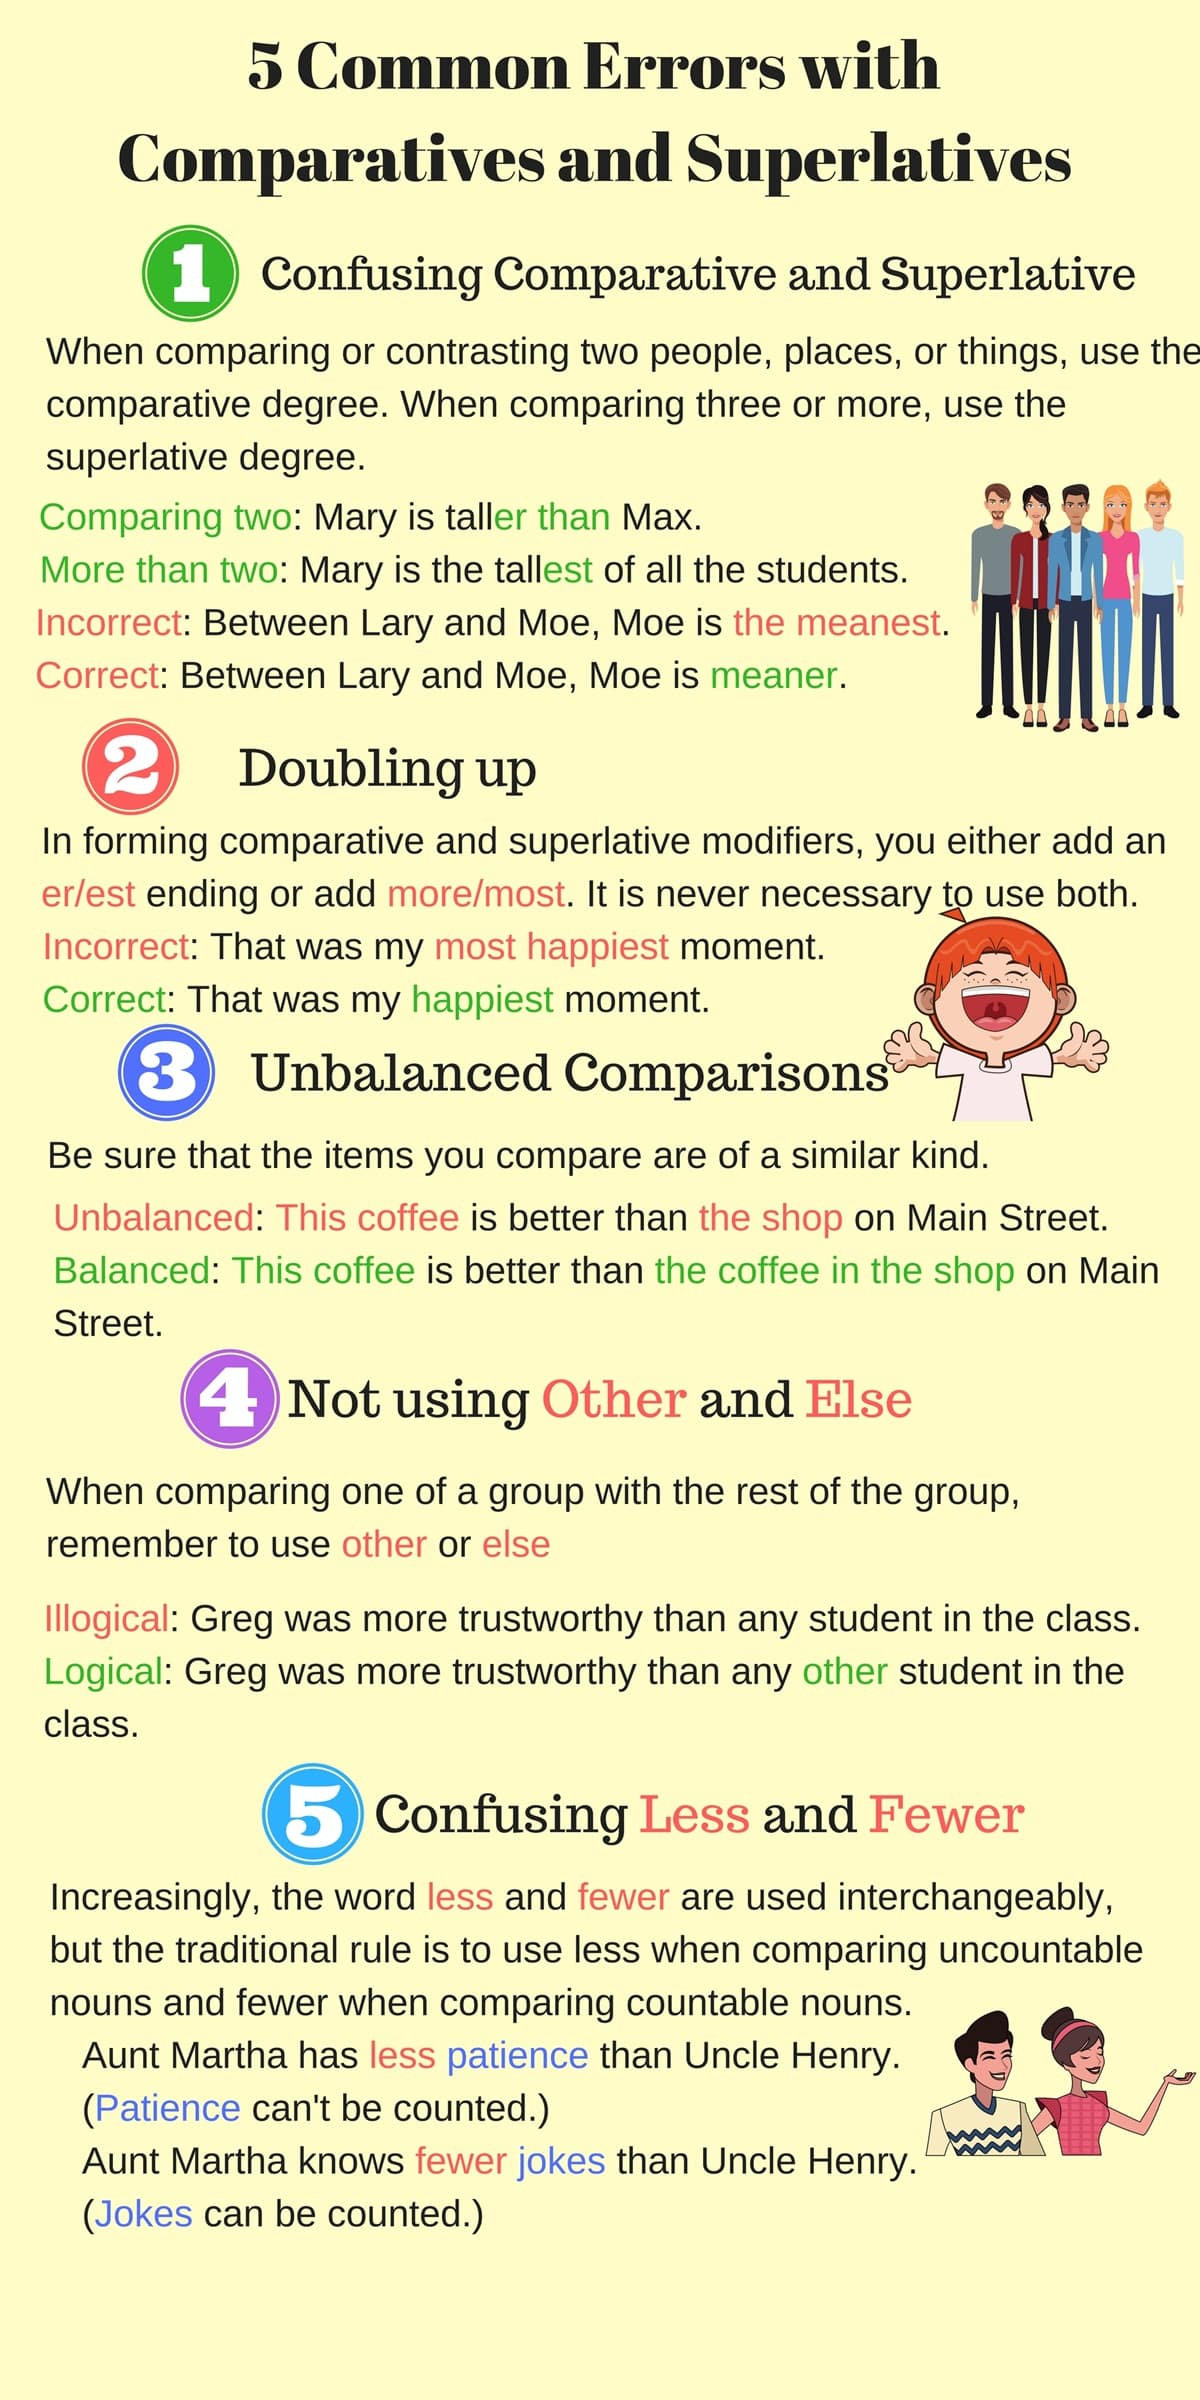 Common Errors with Comparatives and Superlatives